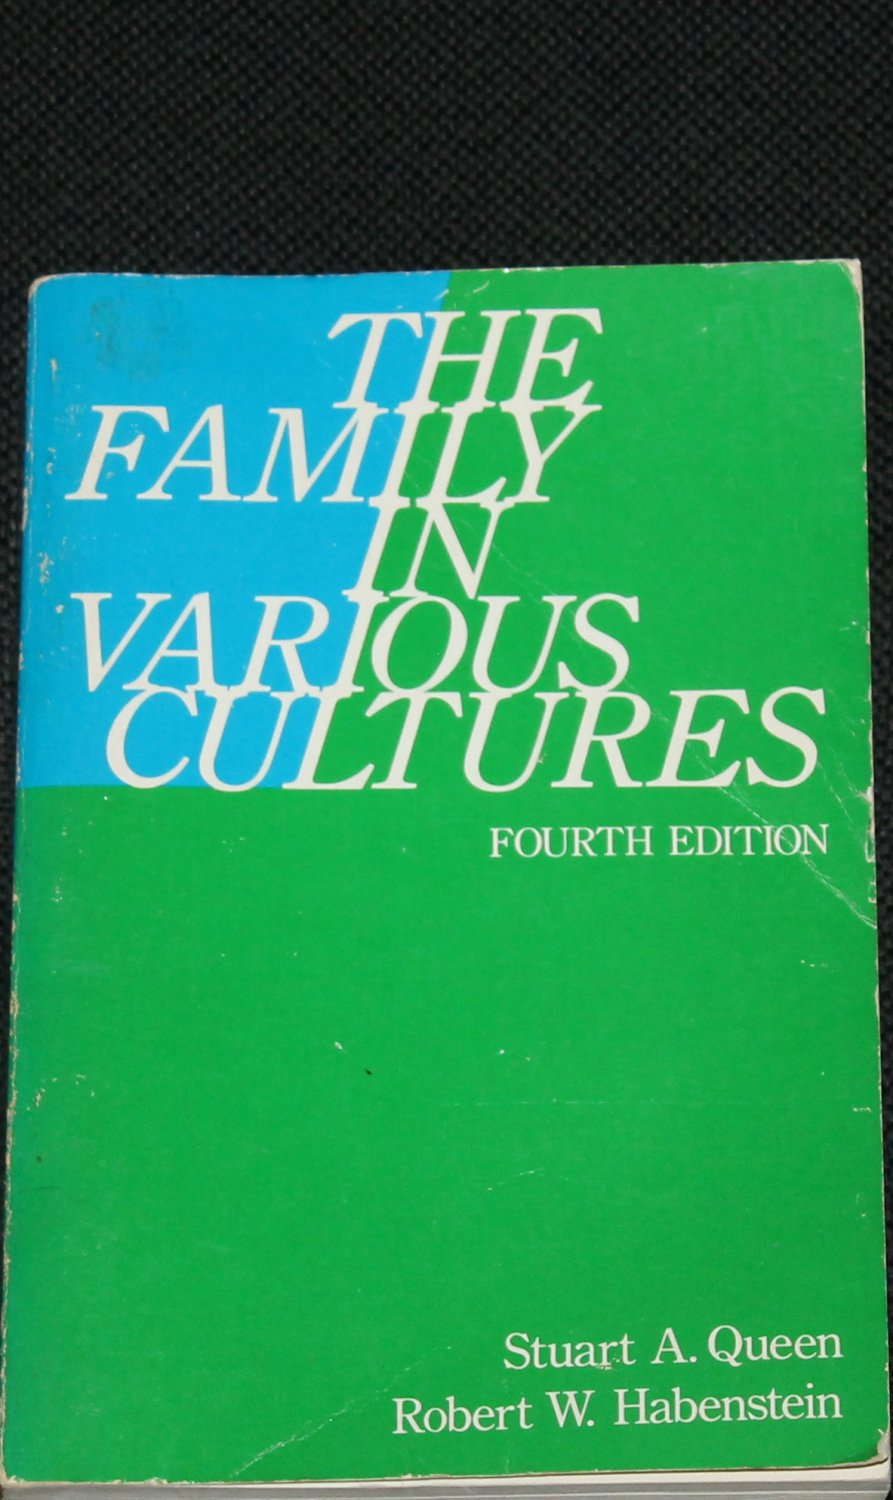 The Family in Various Cultures paperback book by Stuart A. Queen Robert W. Haberstein